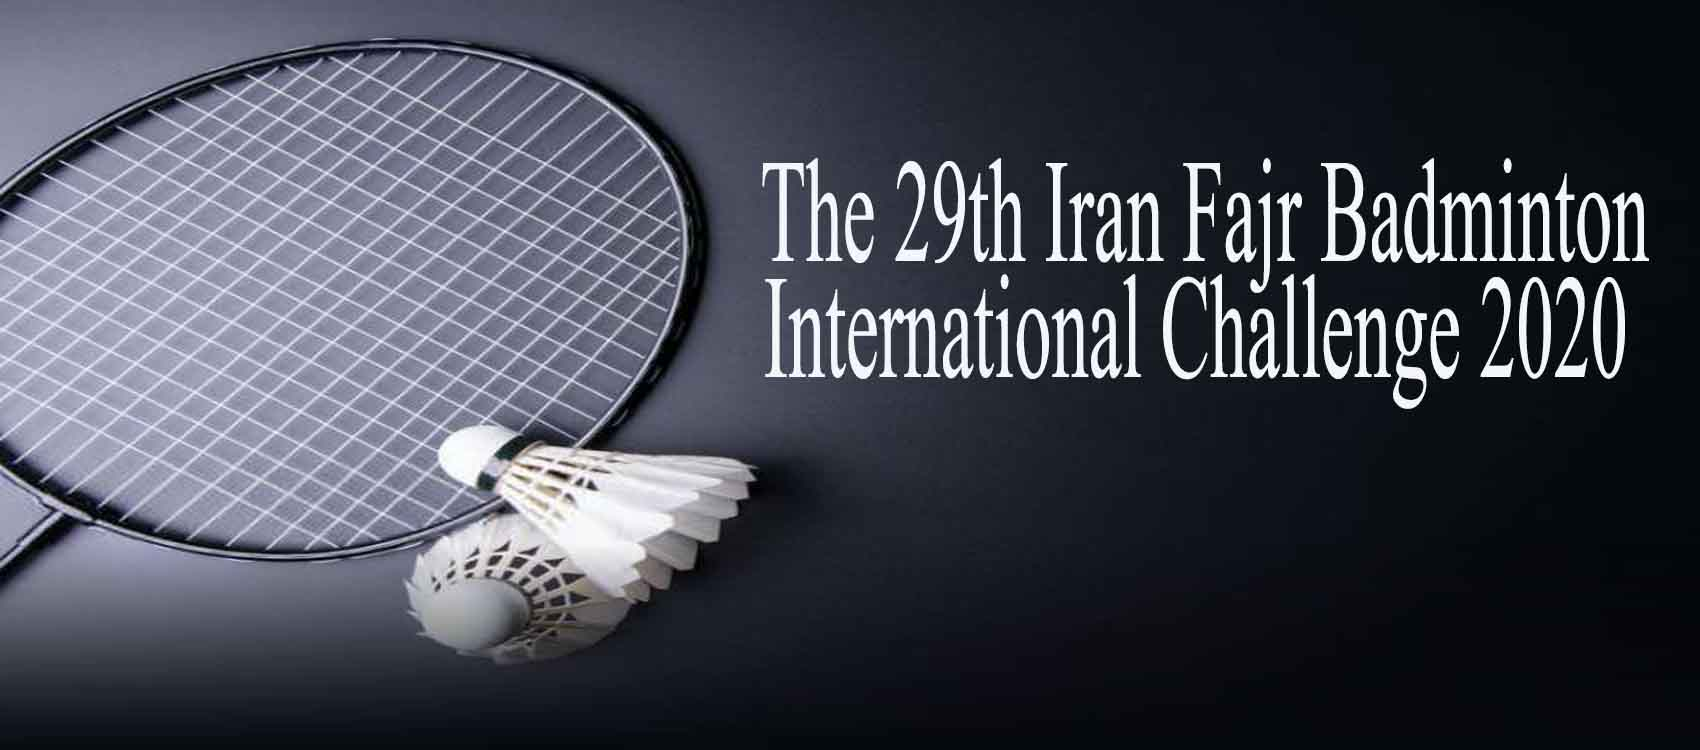 Iran Badminton International challenge 2020,ran Badminton International tournament 2020,Iran fajr badminton tournoment 2020,29th Fajr International Badminton Tournament